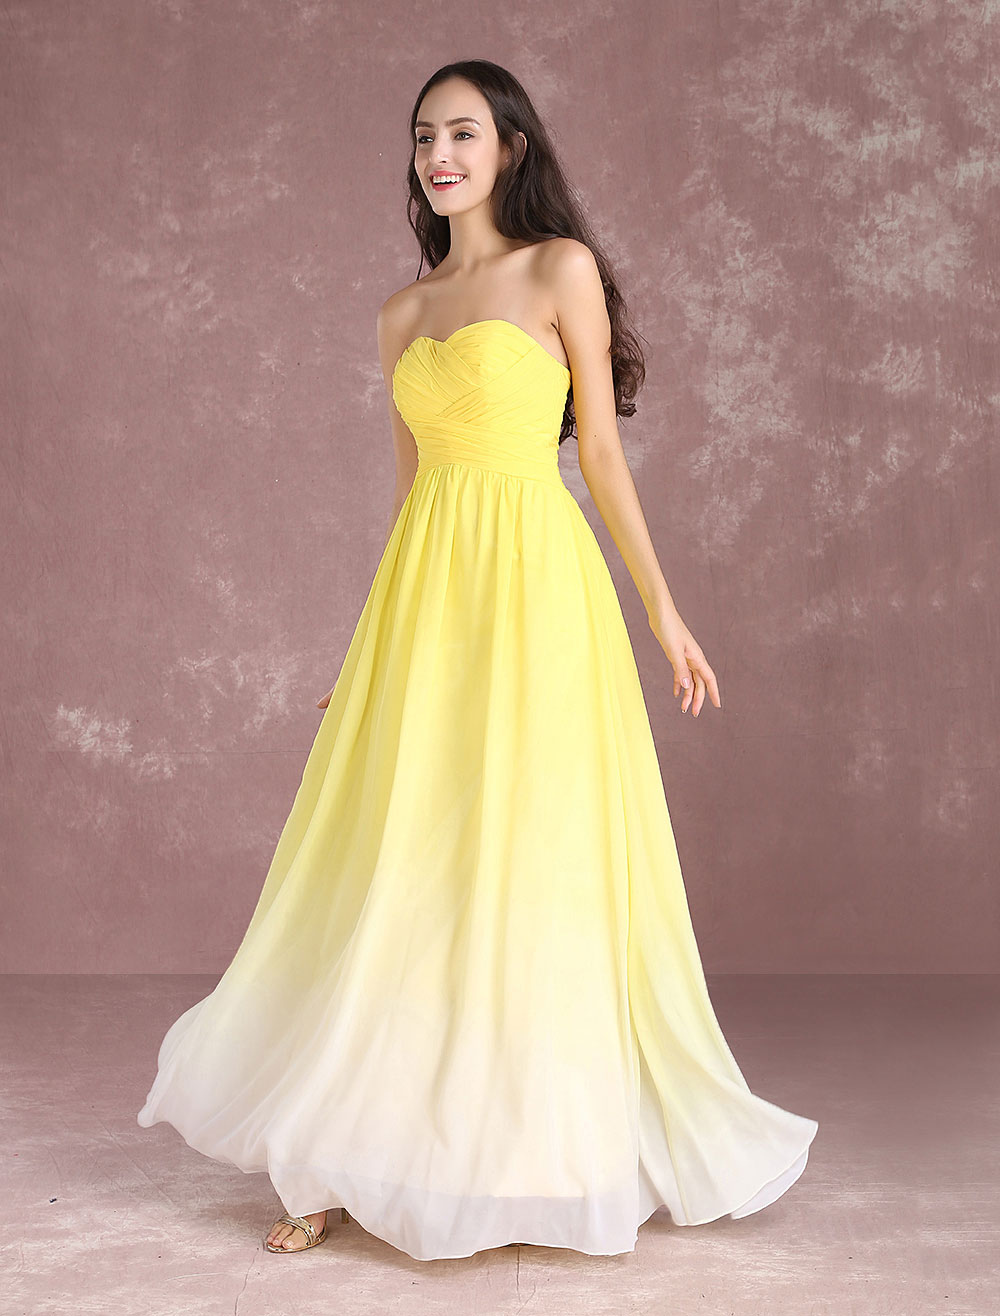 Buy Long Bridesmaid Dress Chiffon Strapless Sweetheart Sleeveless Prom Dress Yellow Pleated Floor Length Party Dress for $106.24 in Milanoo store